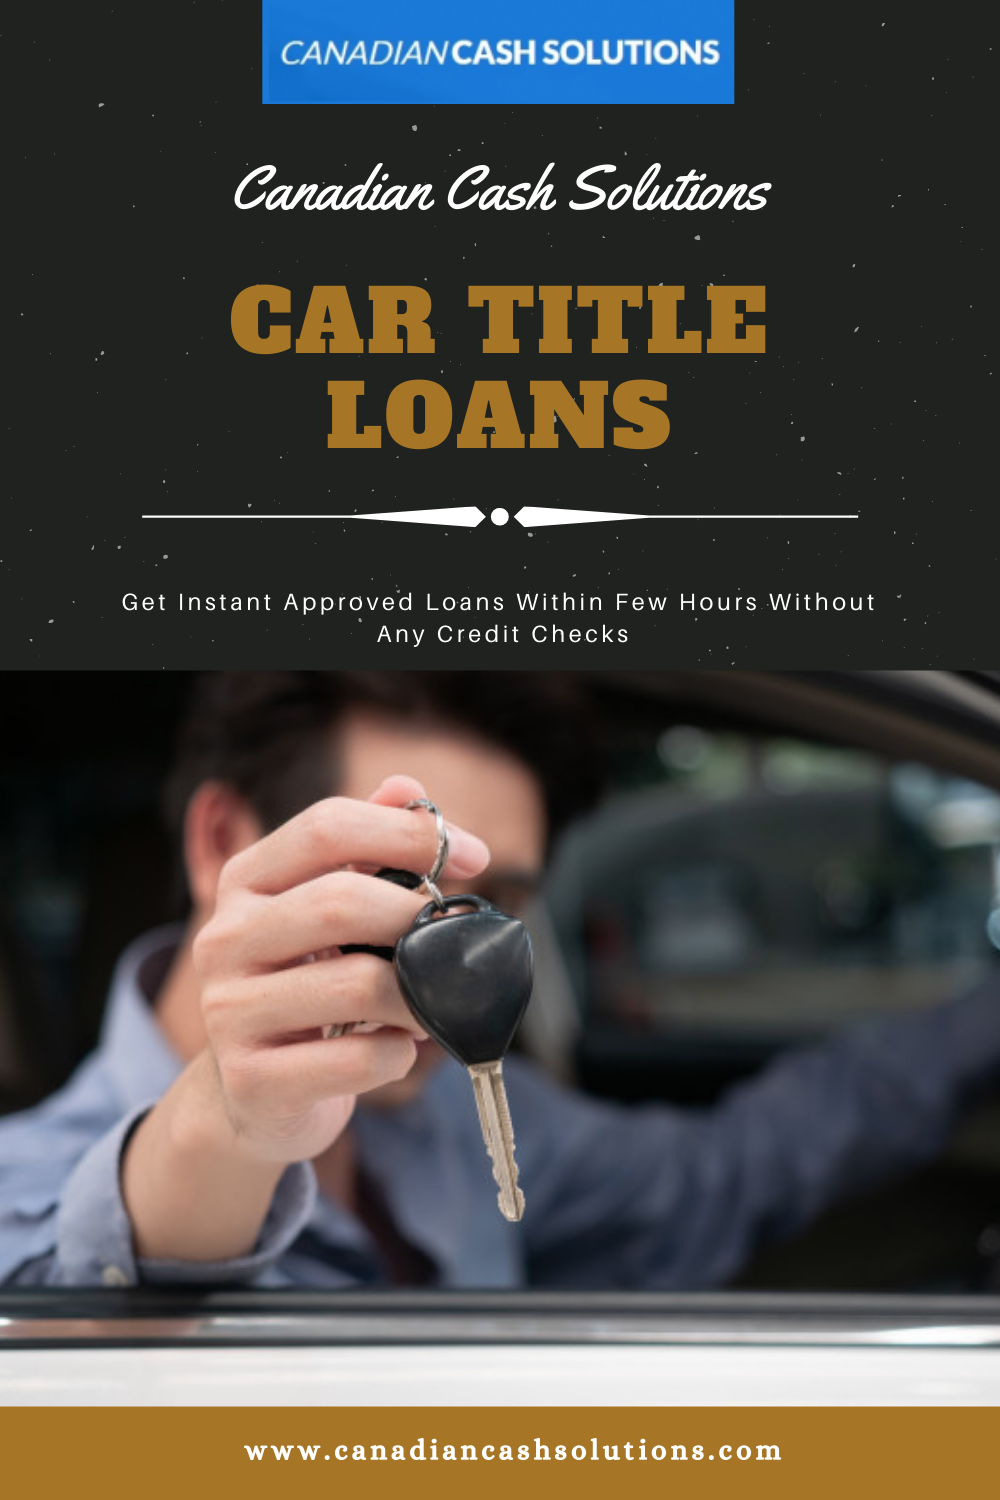 Best No Credit Check Loans With Car Title Loans Oakville In 2020 No Credit Check Loans Car Title Loans For Bad Credit